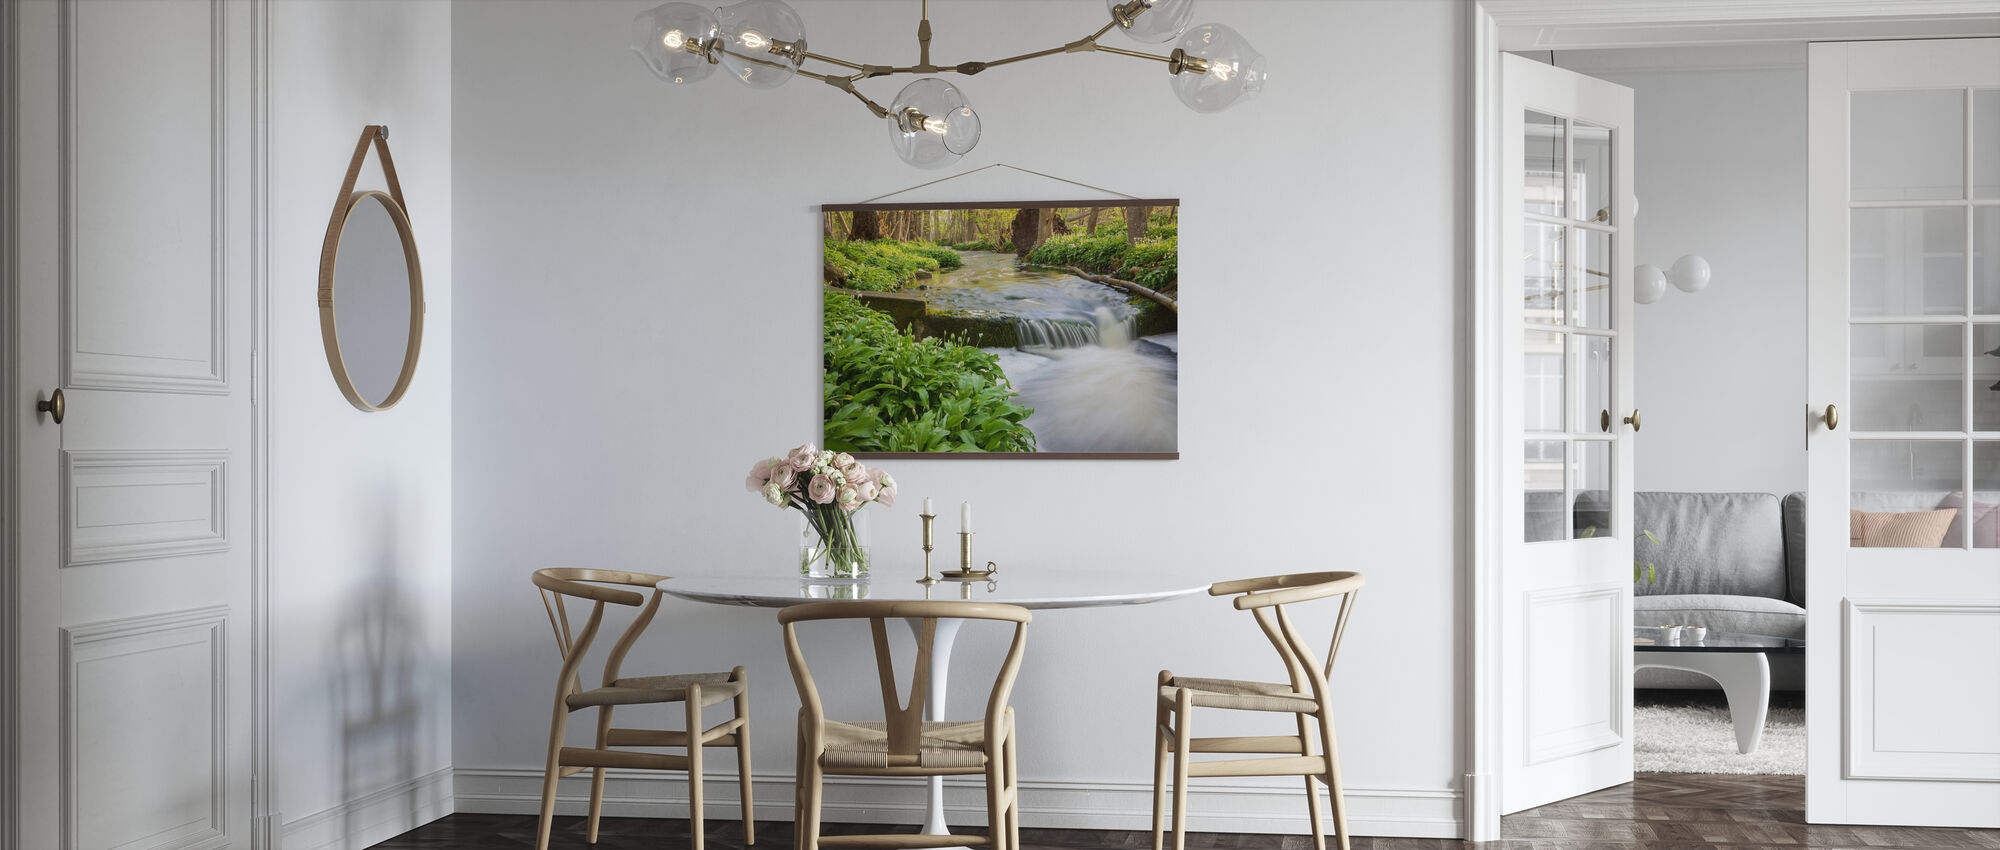 Lummelunda River - Poster - Kitchen